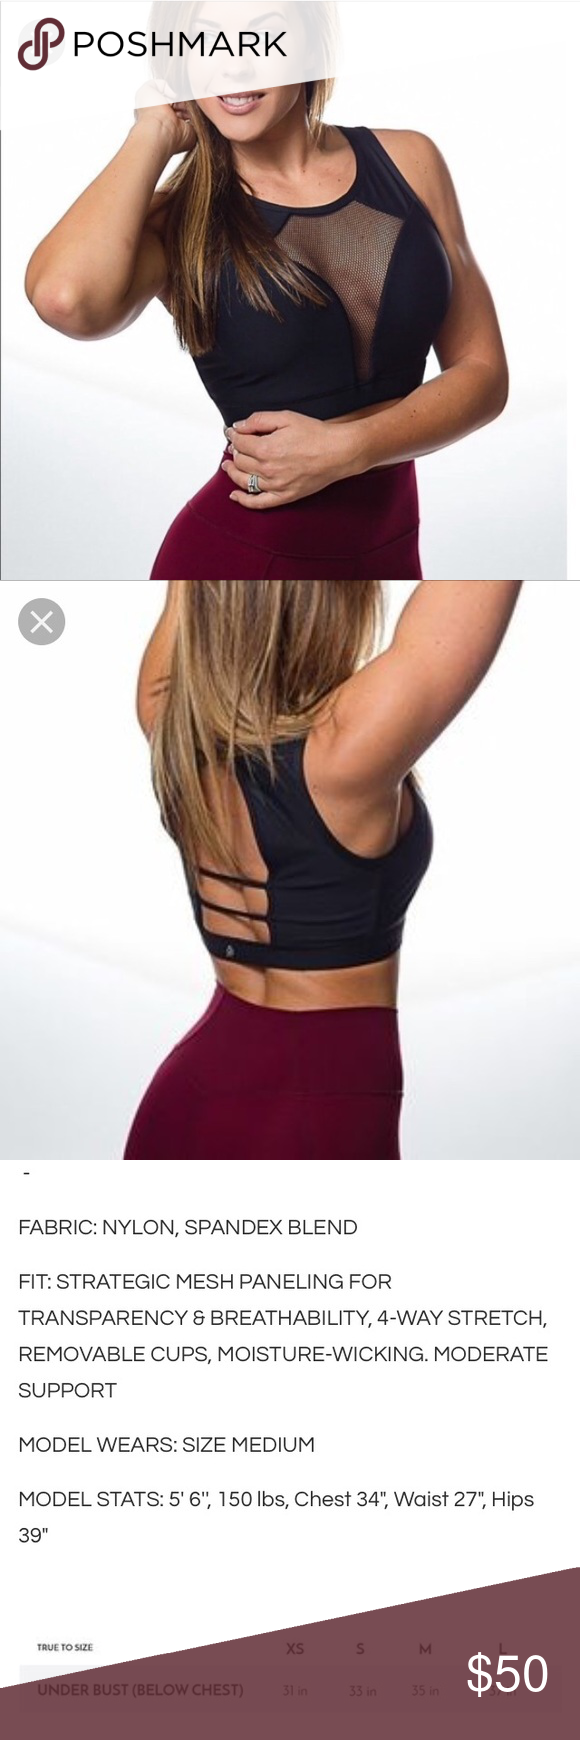 Ptula Grace Fearless Bra Xs Black Clothes Design Fashion Tips Fashion Design Padded sports bras come with removable cups for customised support, while running sports bras with elasticated underbands help reduce bounce. pinterest